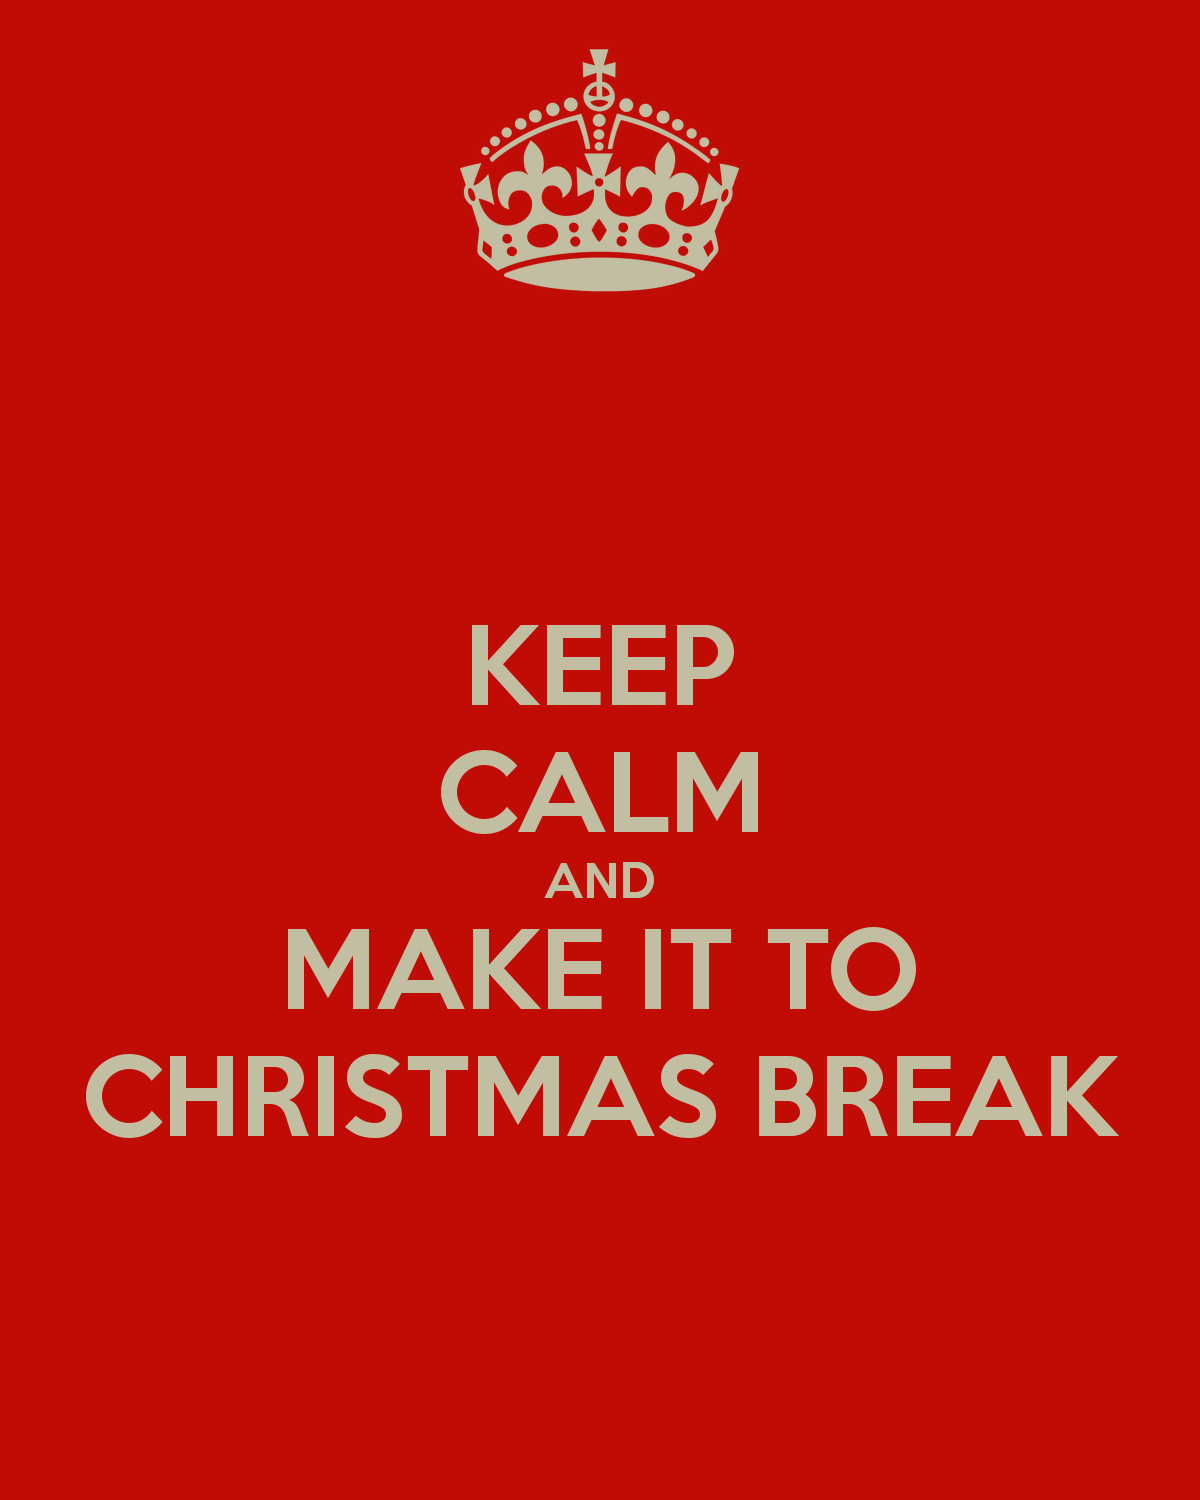 keep-calm-and-make-it-to-christmas-break-232 – Paul D. Dail